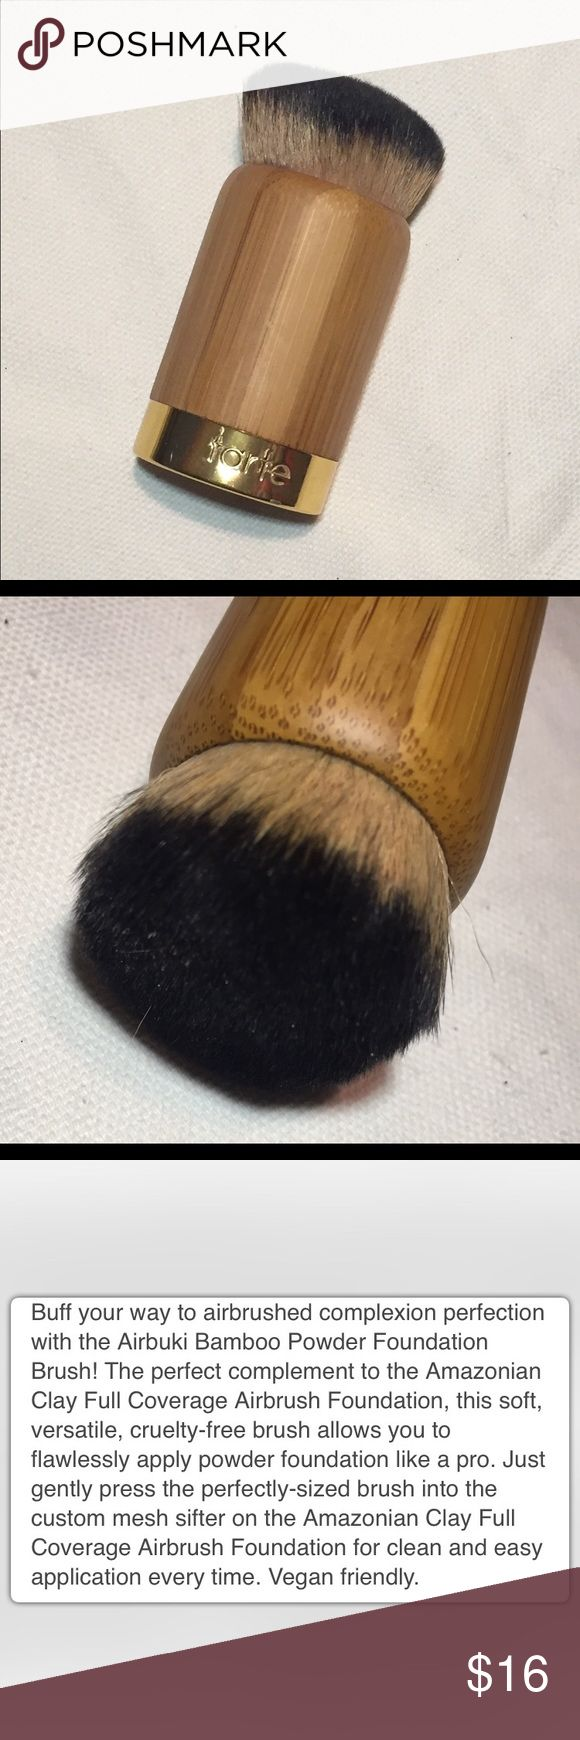 tarte Airbuki Bamboo Powder Foundation Brush Has not been used. Awesome foundation brush for helping create an airbrushed finish look. Retails for $28. Bundle with additional items for a 20% discount. tarte Makeup Brushes & Tools